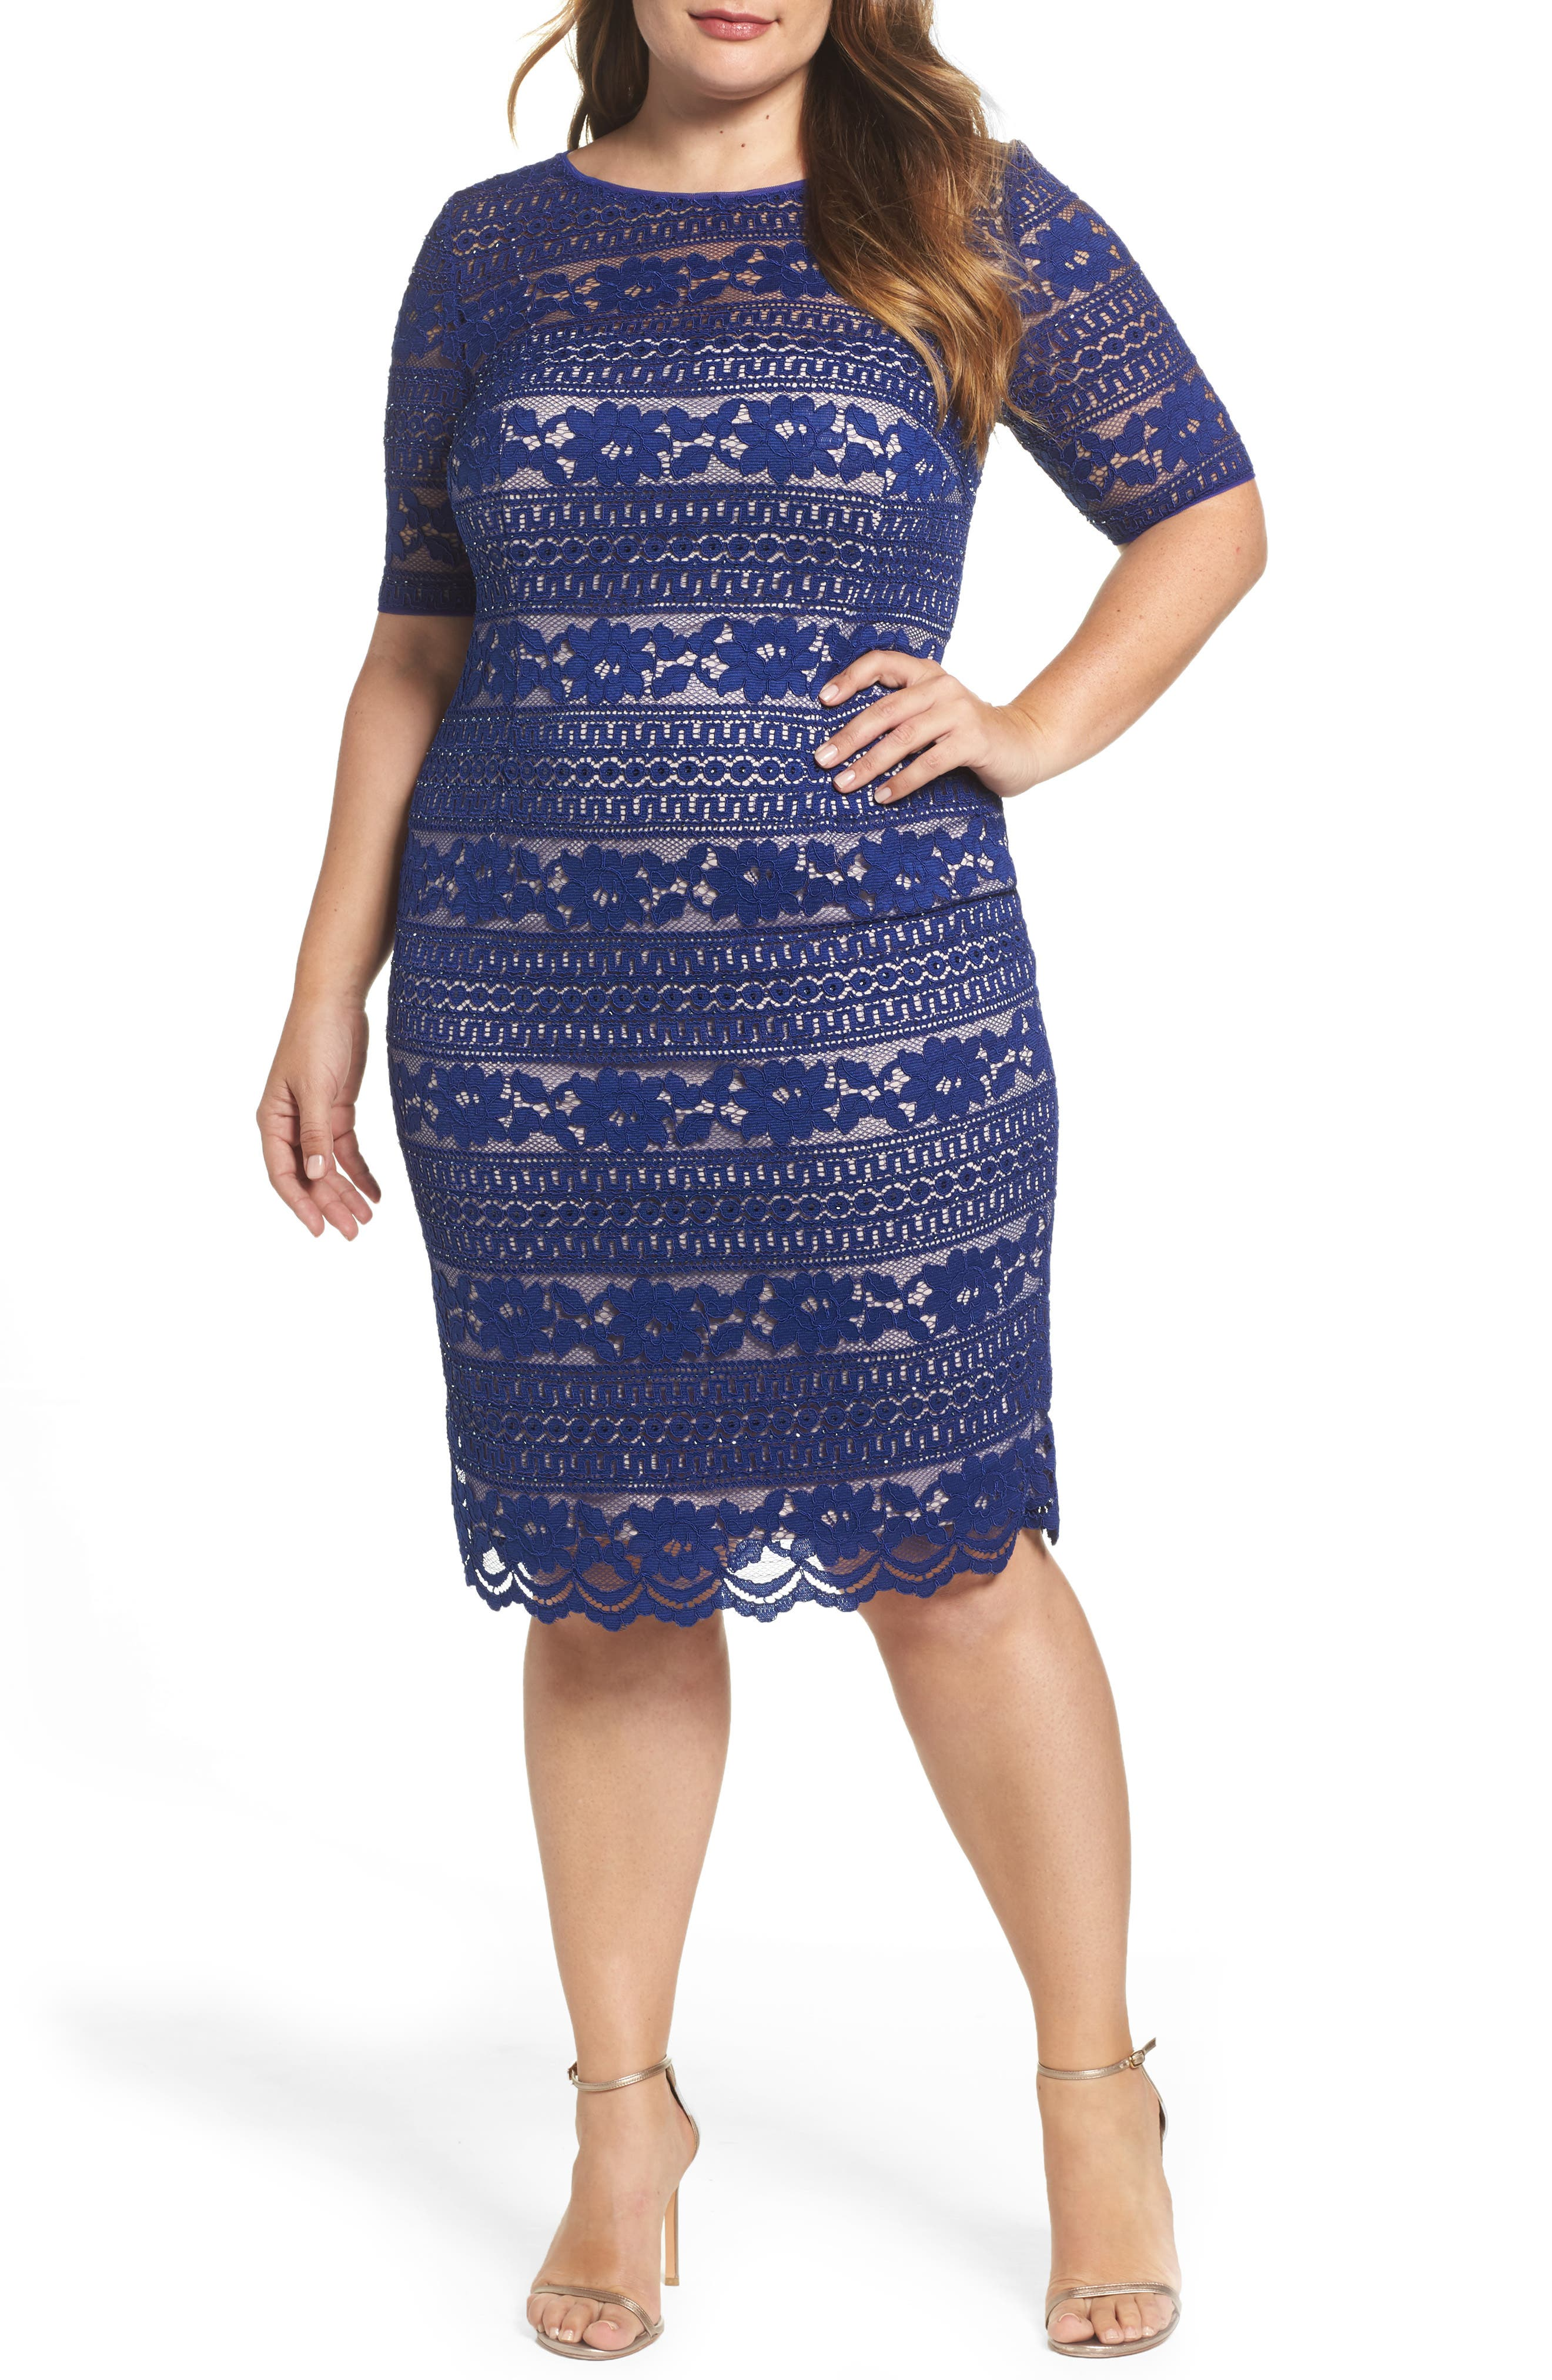 Alternate Image 1 Selected - Adrianna Papell Illusion Sleeve Lace Sheath Dress (Plus Size)